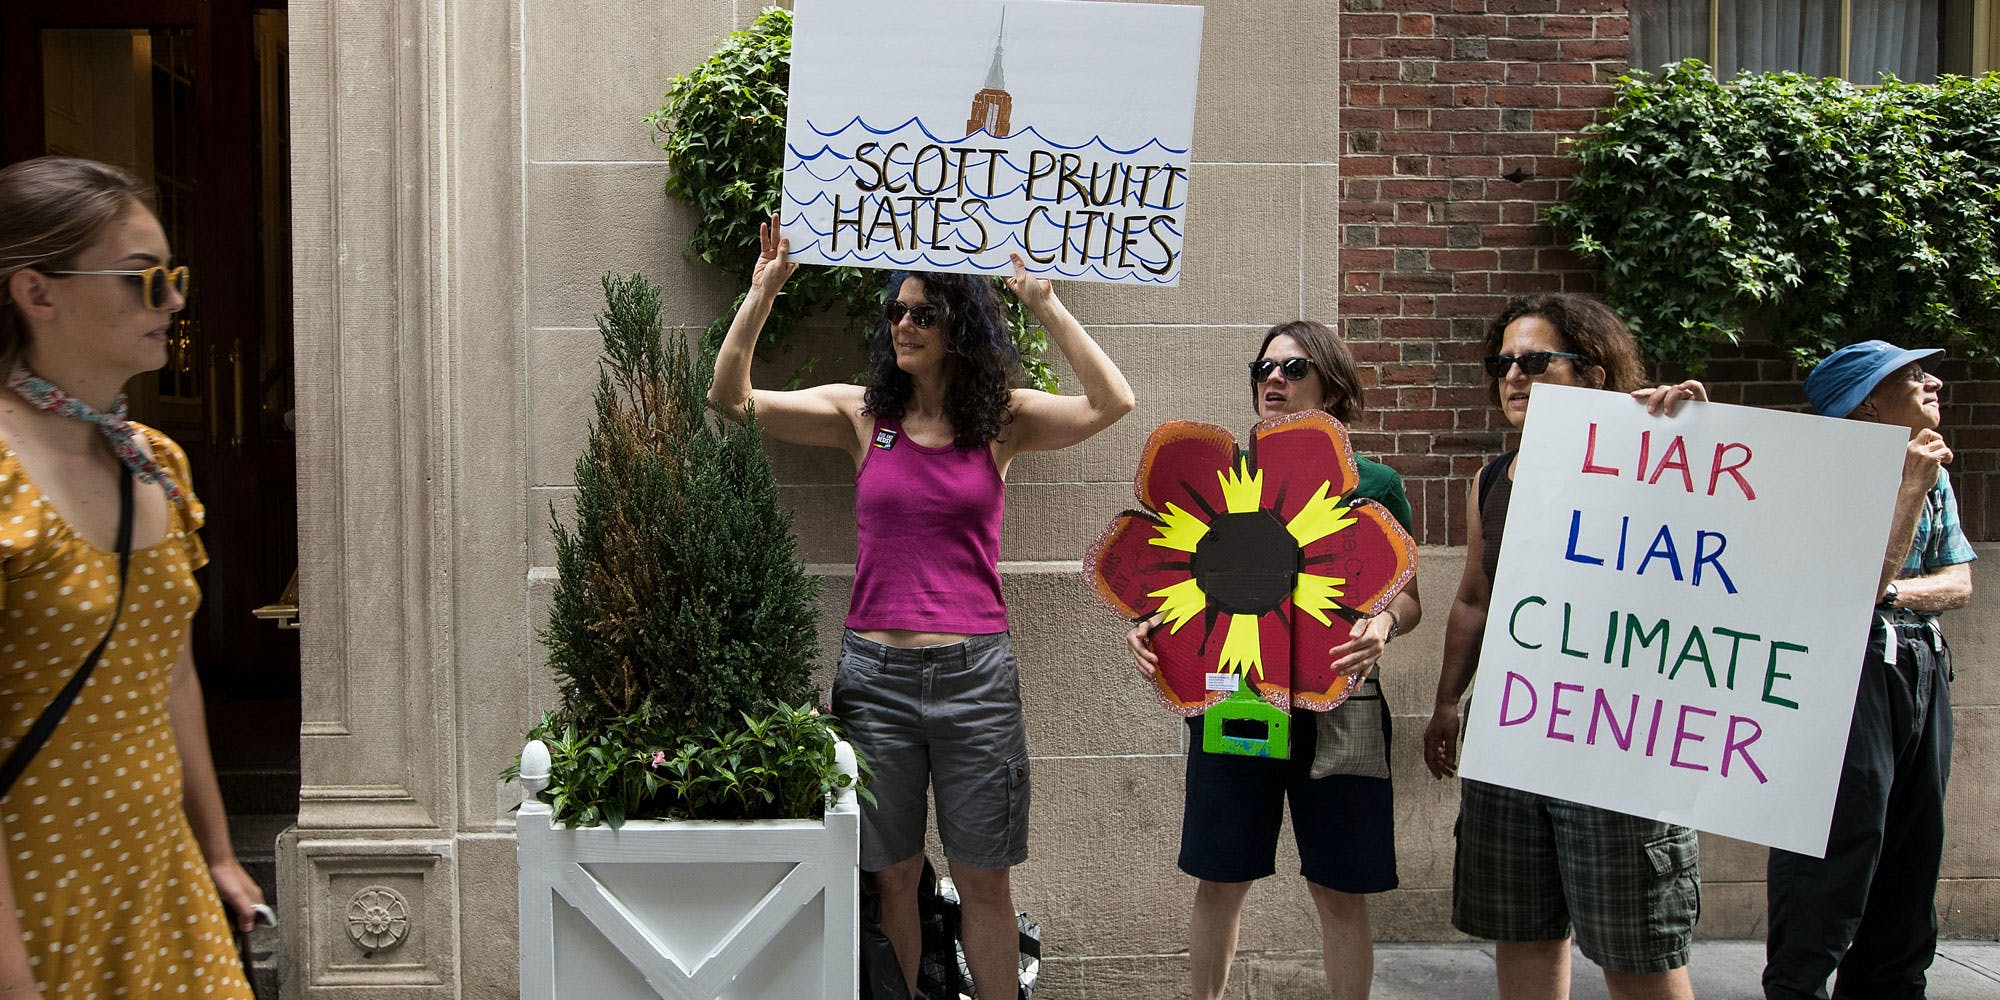 NEW YORK, NY - JUNE 20: Environmental activists protest outside of the Harvard Club where Environmental Protection Agency (EPA) Administrator Scott Pruitt was scheduled to speak, June 20, 2017 in New York City. Pruitt abruptly cancelled his appearance, where he was supposed to discuss the United States' environmental role in the world following the decision to withdraw the United States from the Paris Climate Accord. (Photo by Drew Angerer/Getty Images)